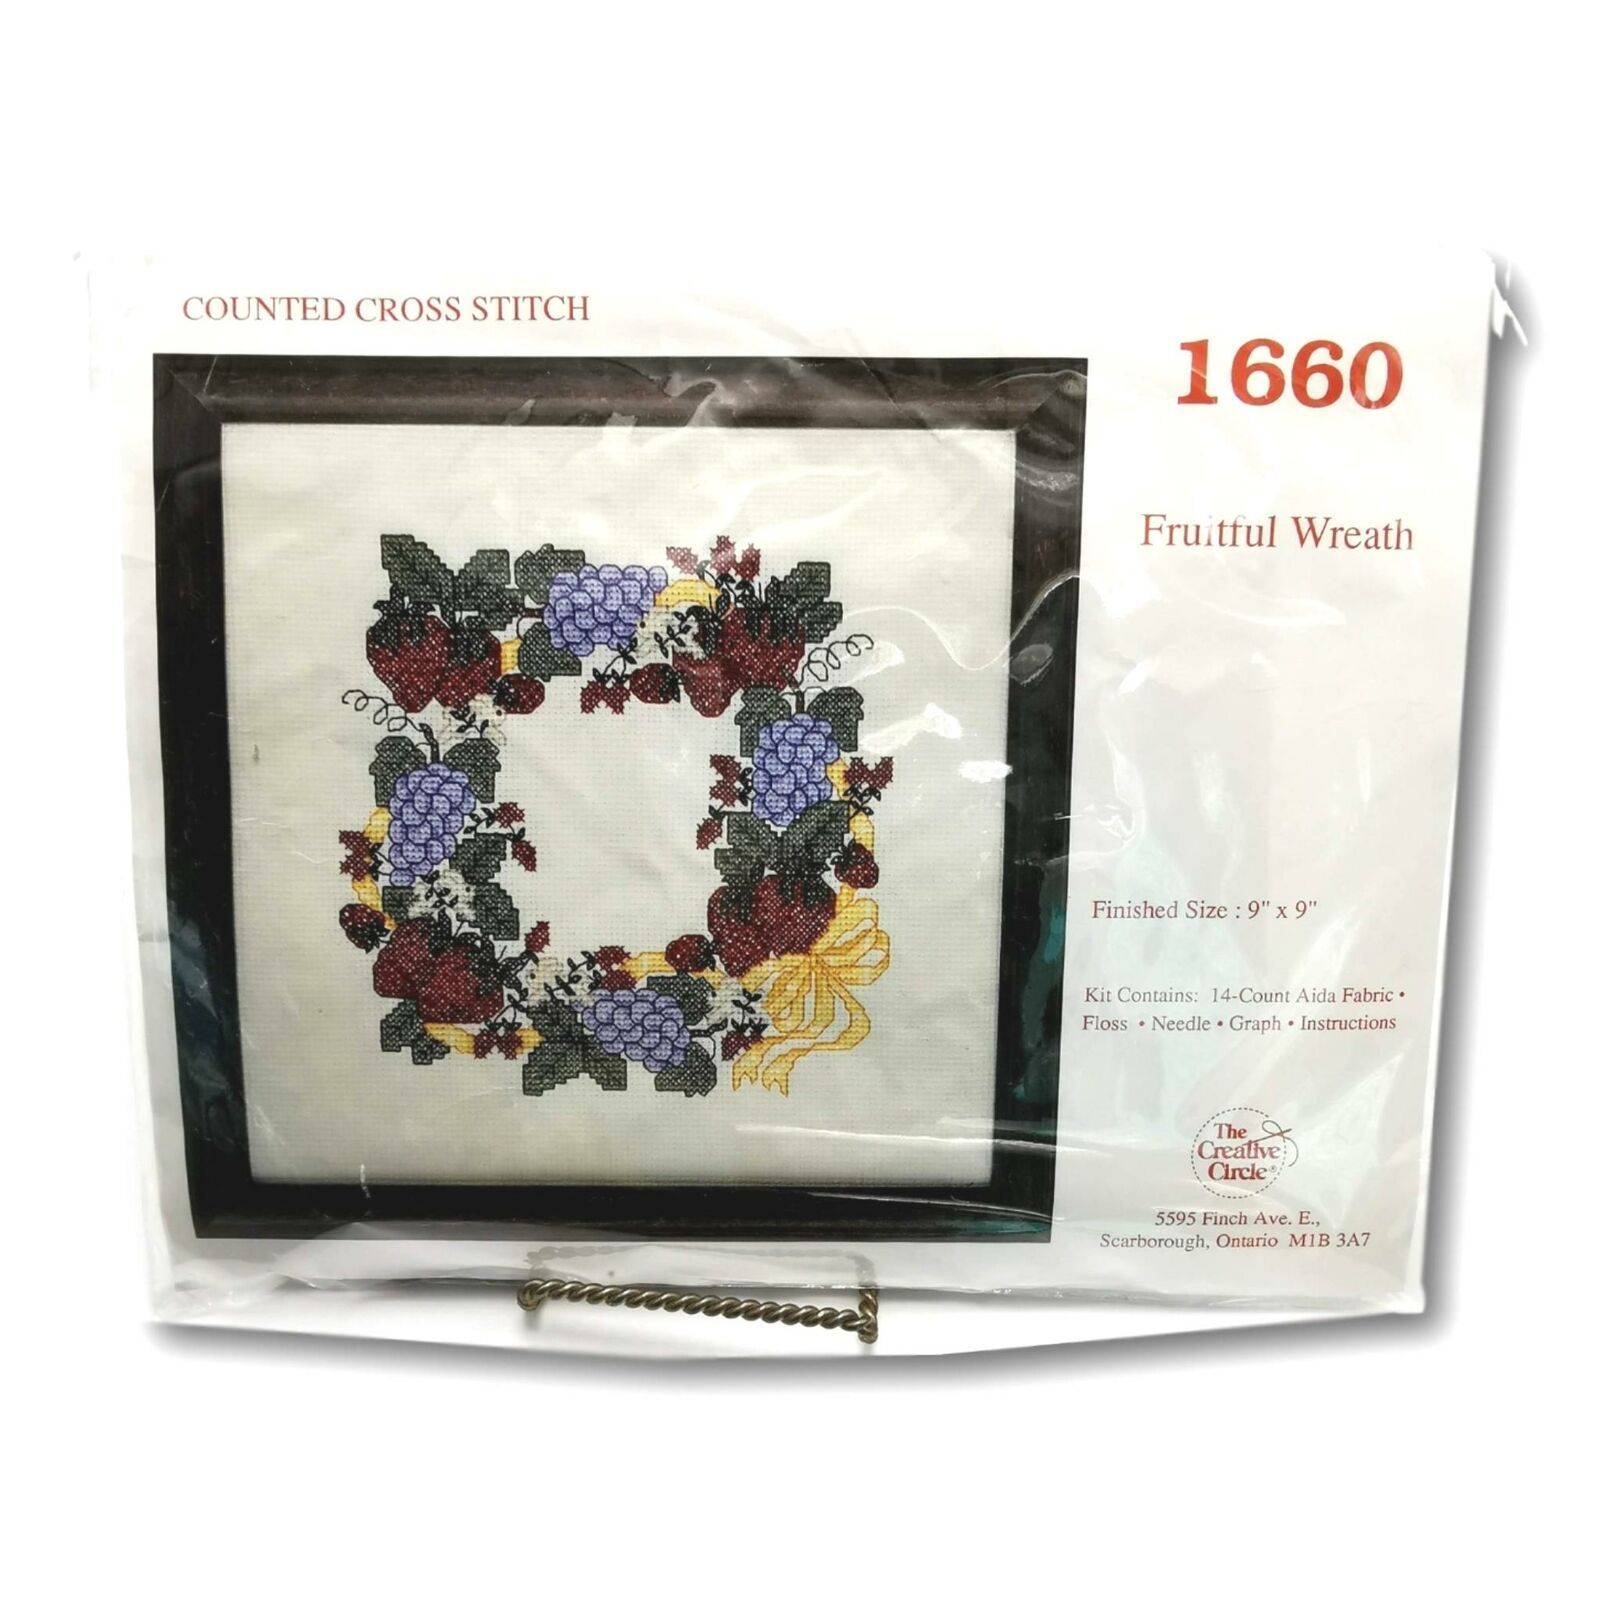 Primary image for Creative Circle 1660 Fruitful Wreath Counted Cross Stitch Kit Grapes Aida 9 x 9